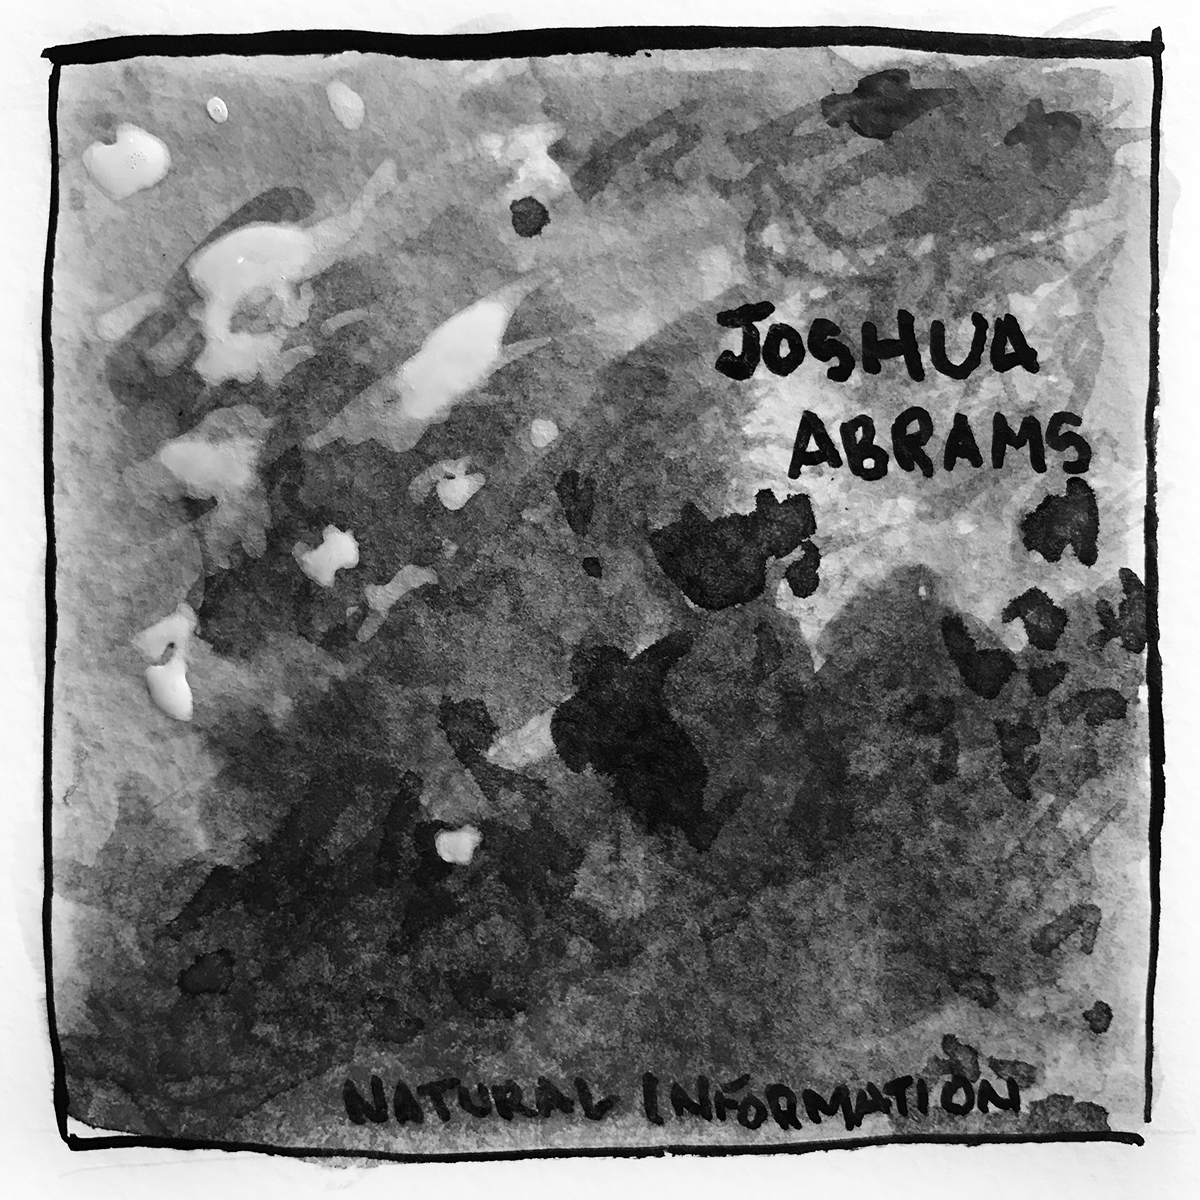 Joshua Abrams Natural Information